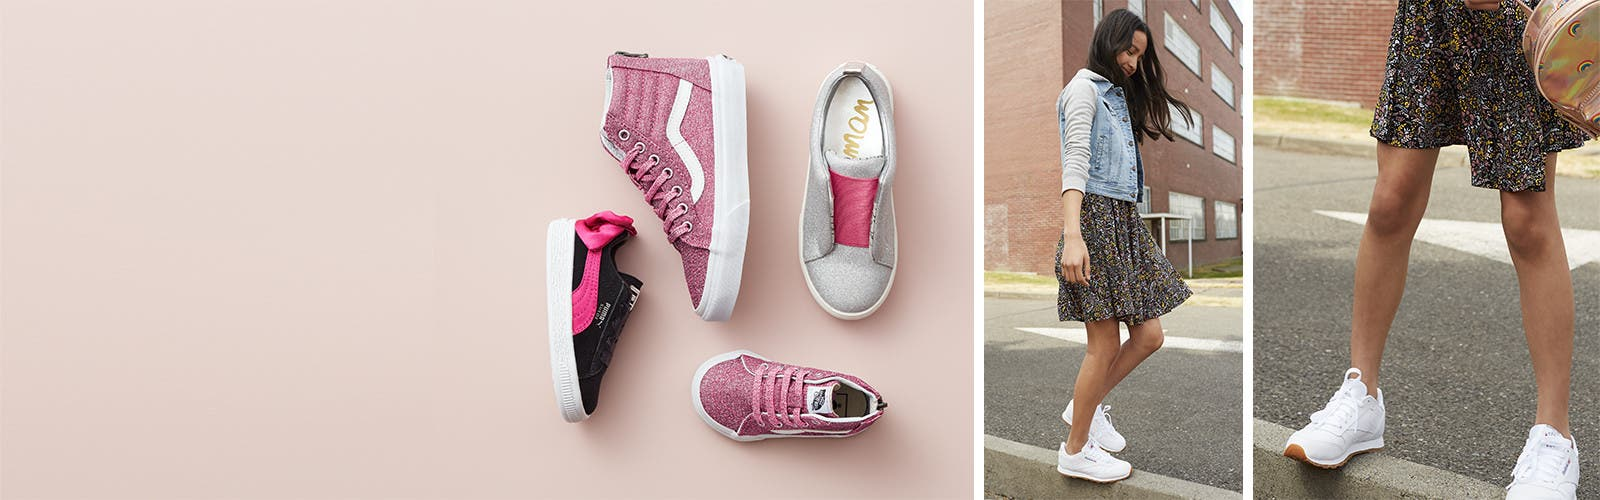 Get their kicks: girls' shoes.